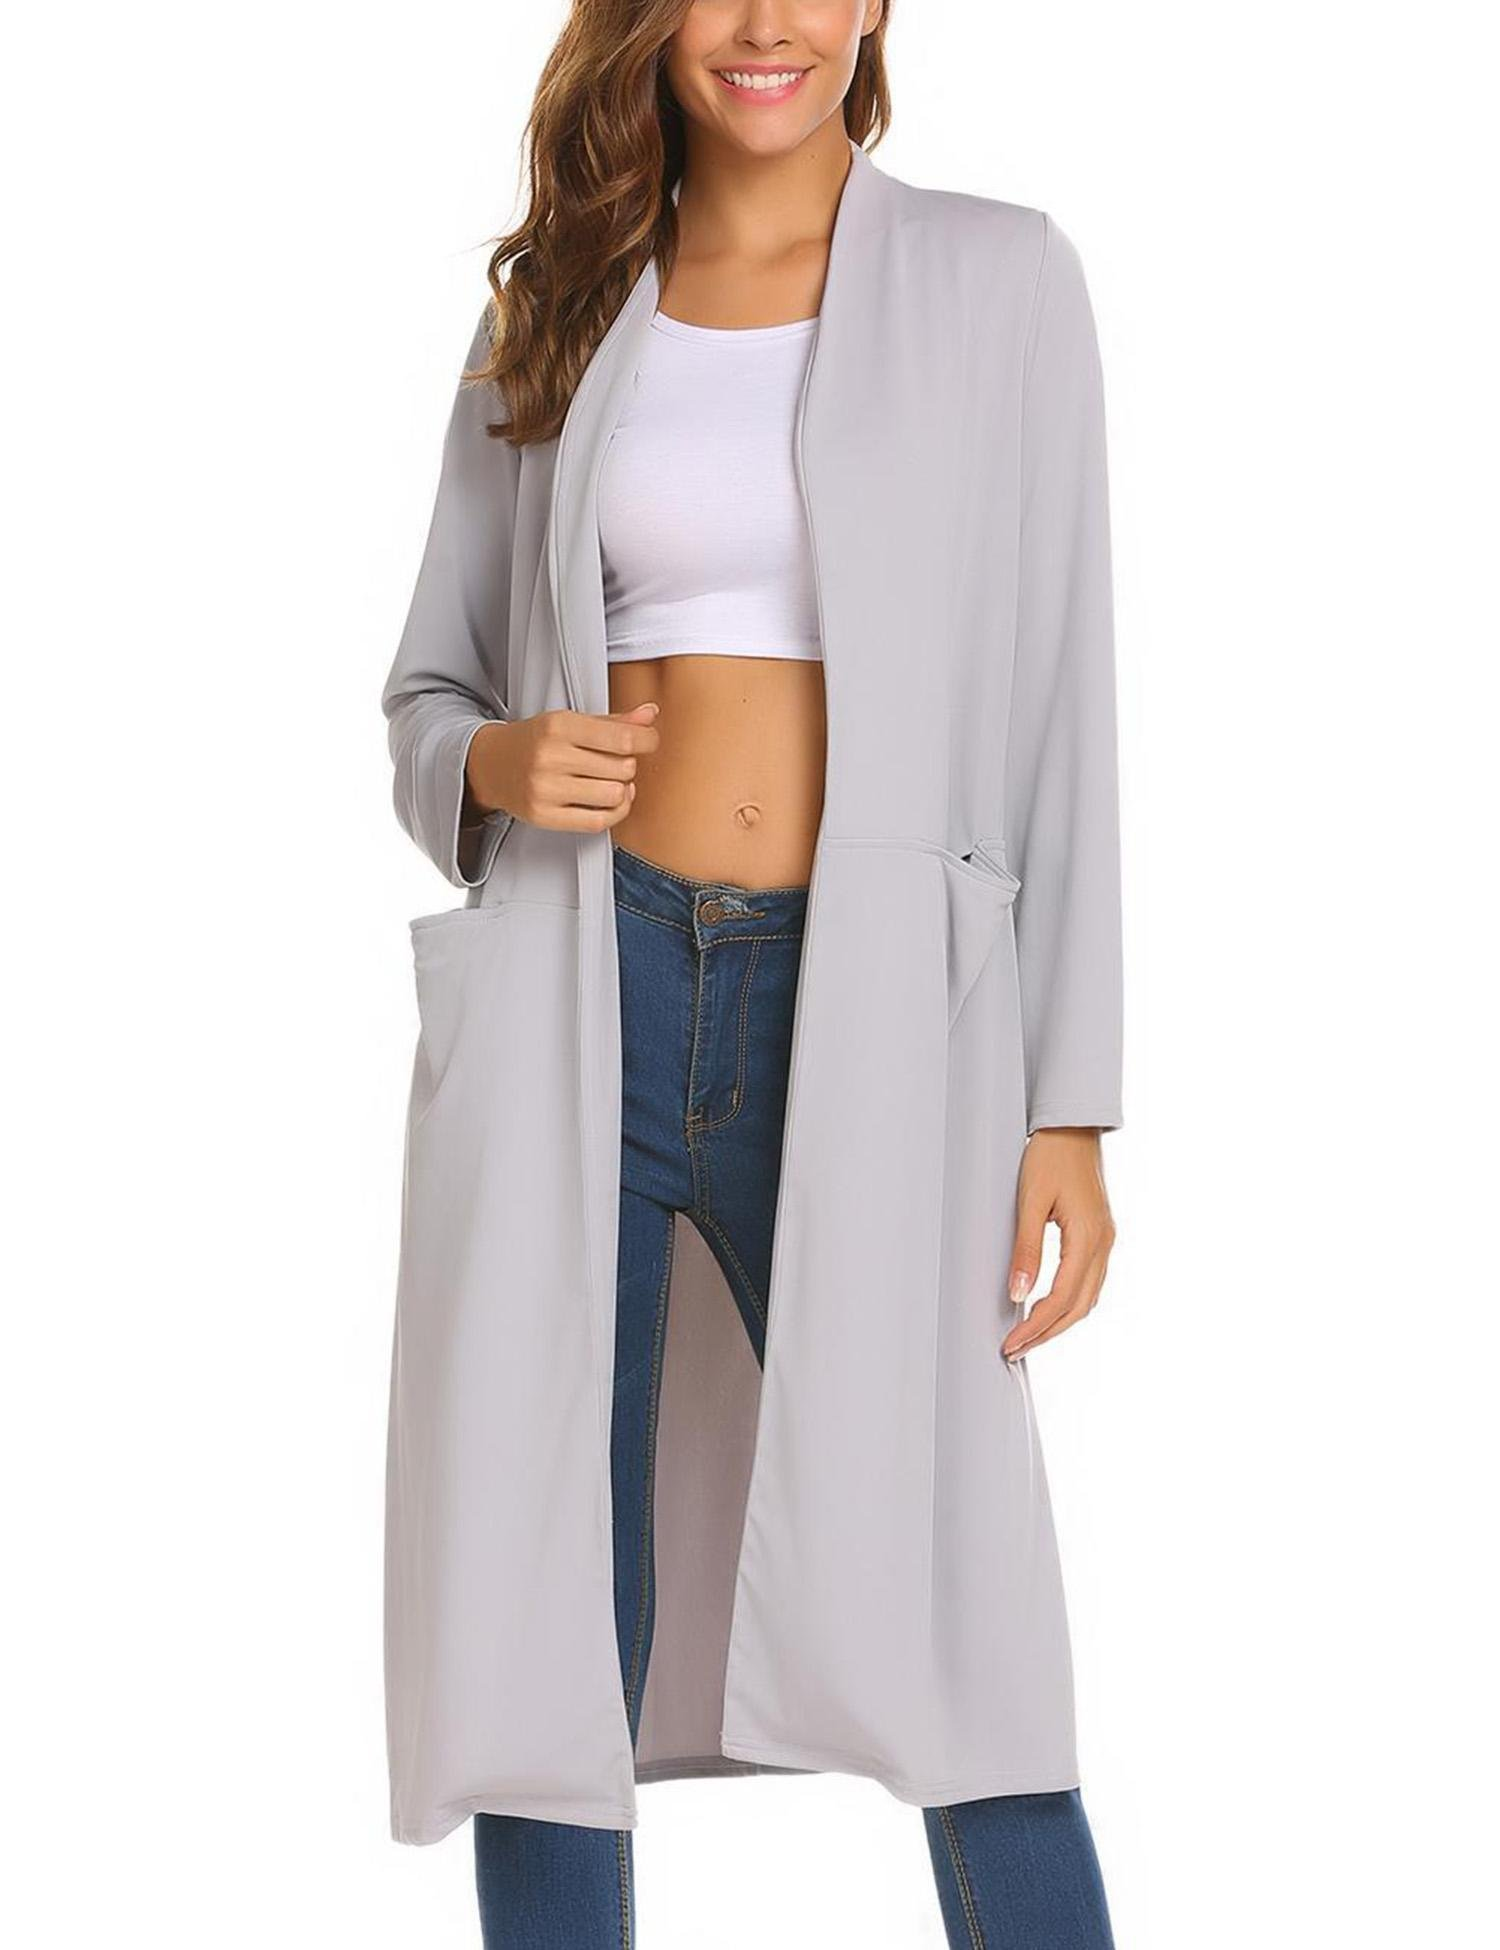 OD'lover Women's Open Front Long Trench Coat Casual Lightweight Blazer Cardigans